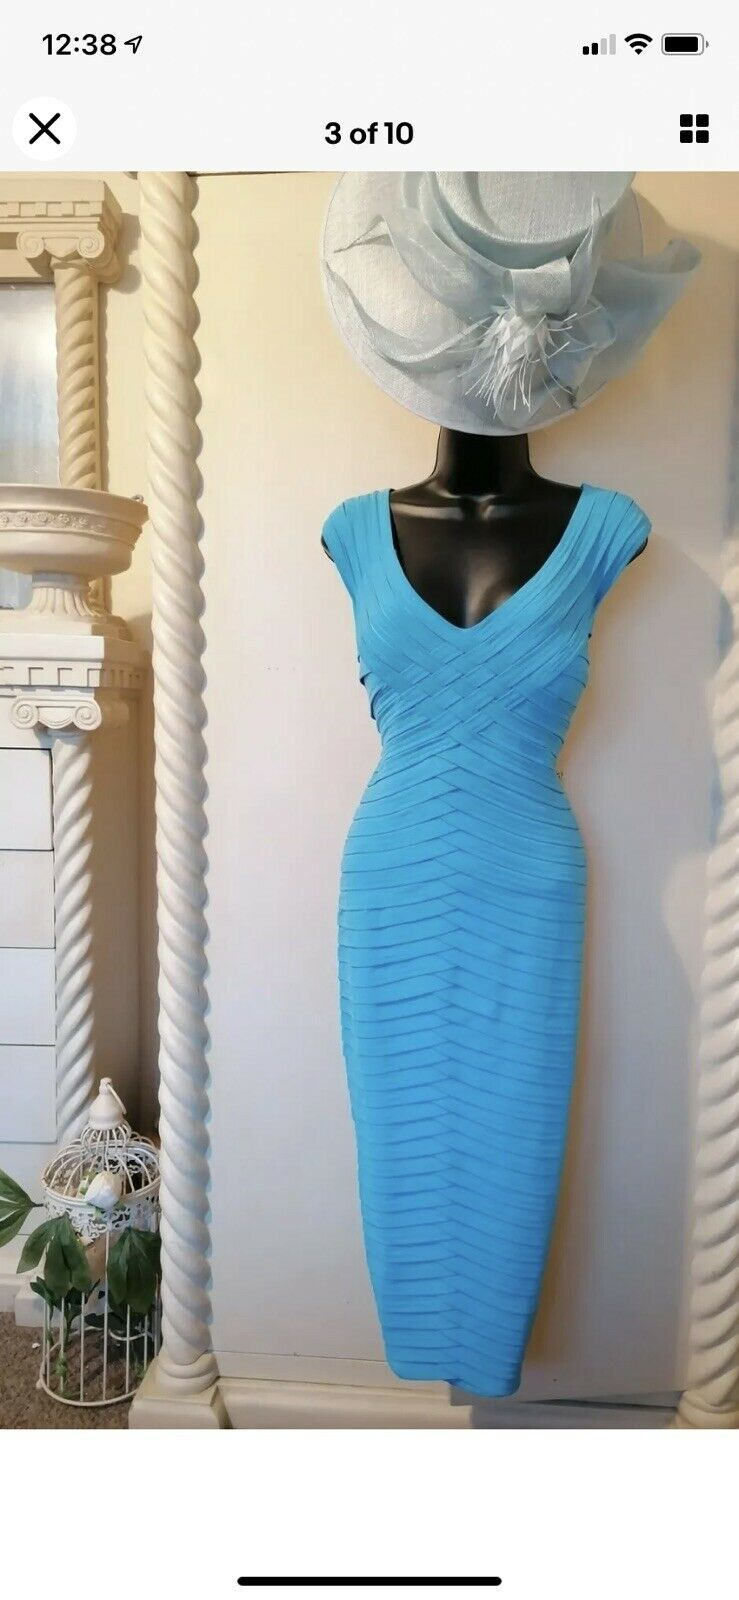 veni infantino mother of the bride Outfit Sise16